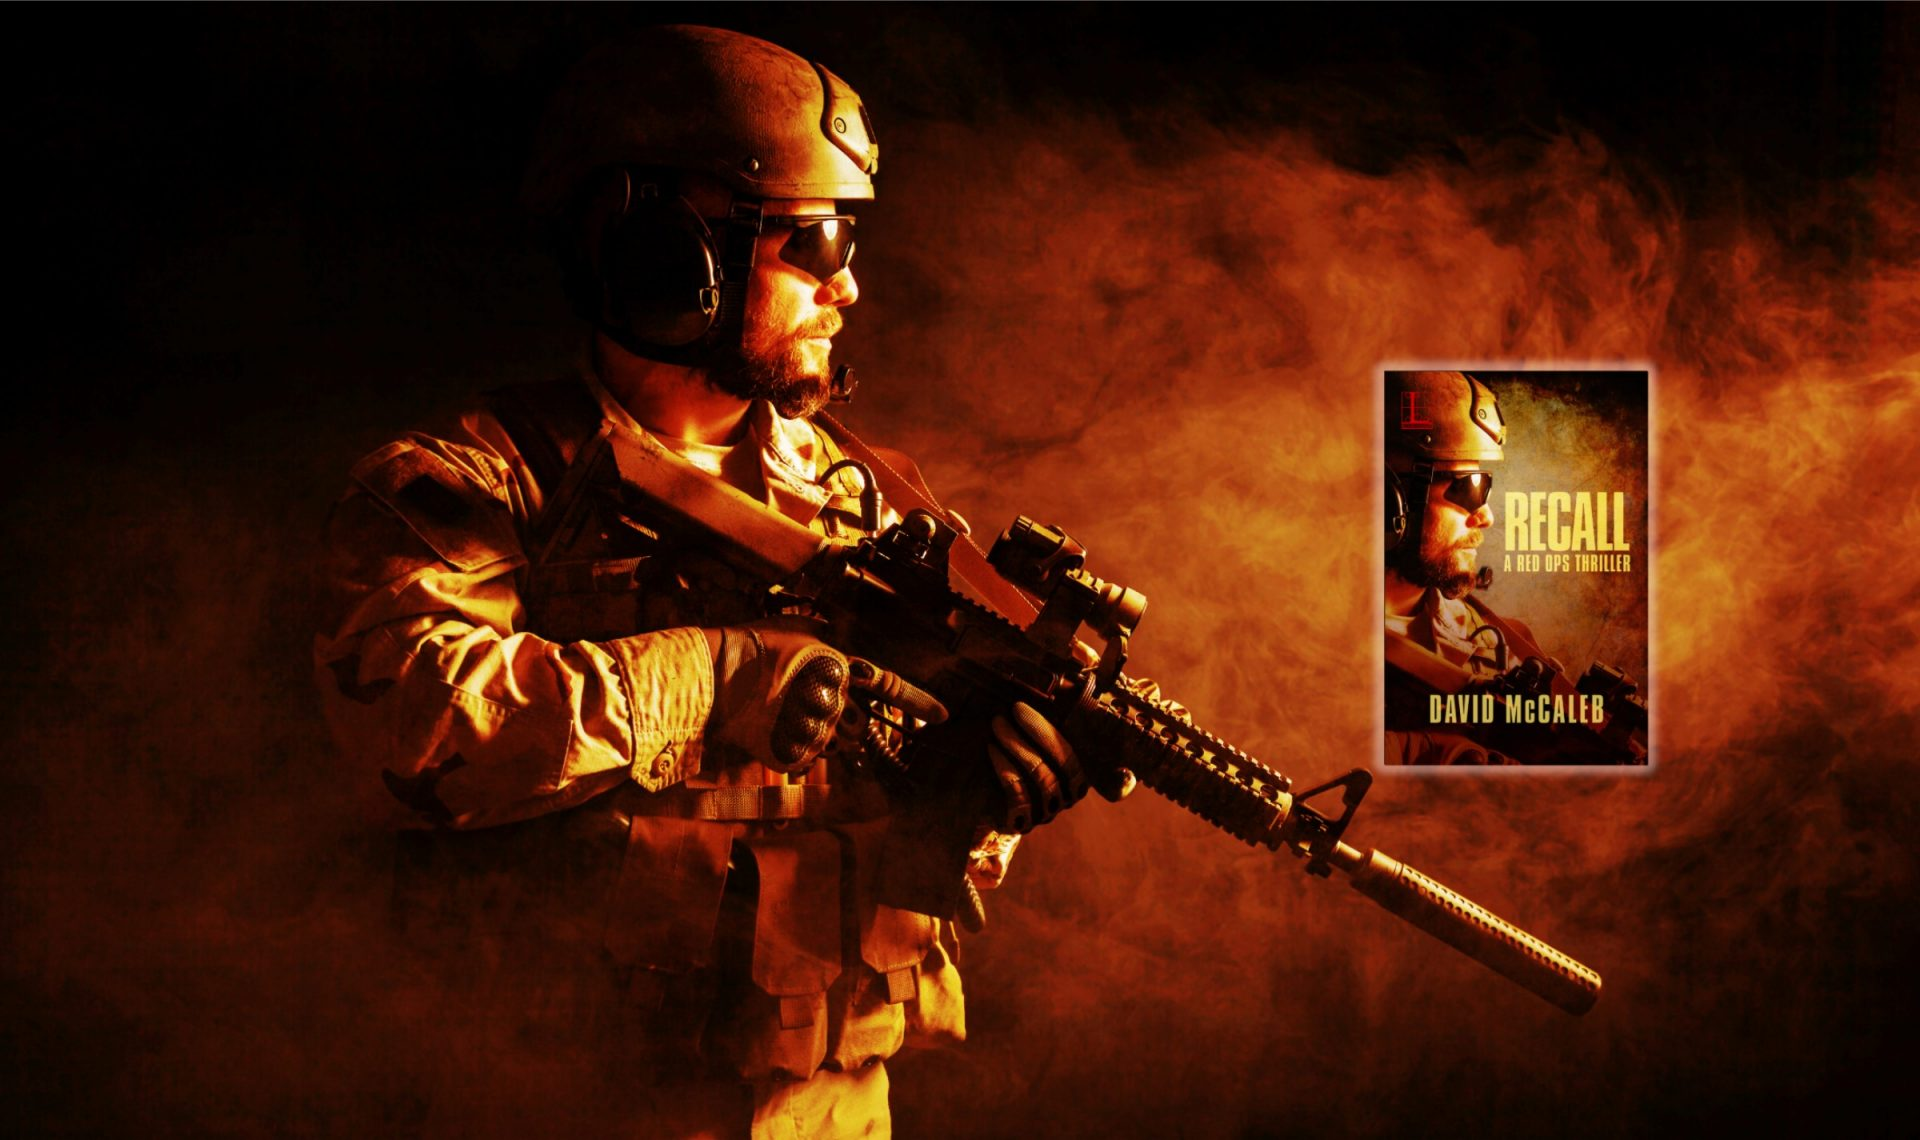 Special ops soldier, header RECALL slider image